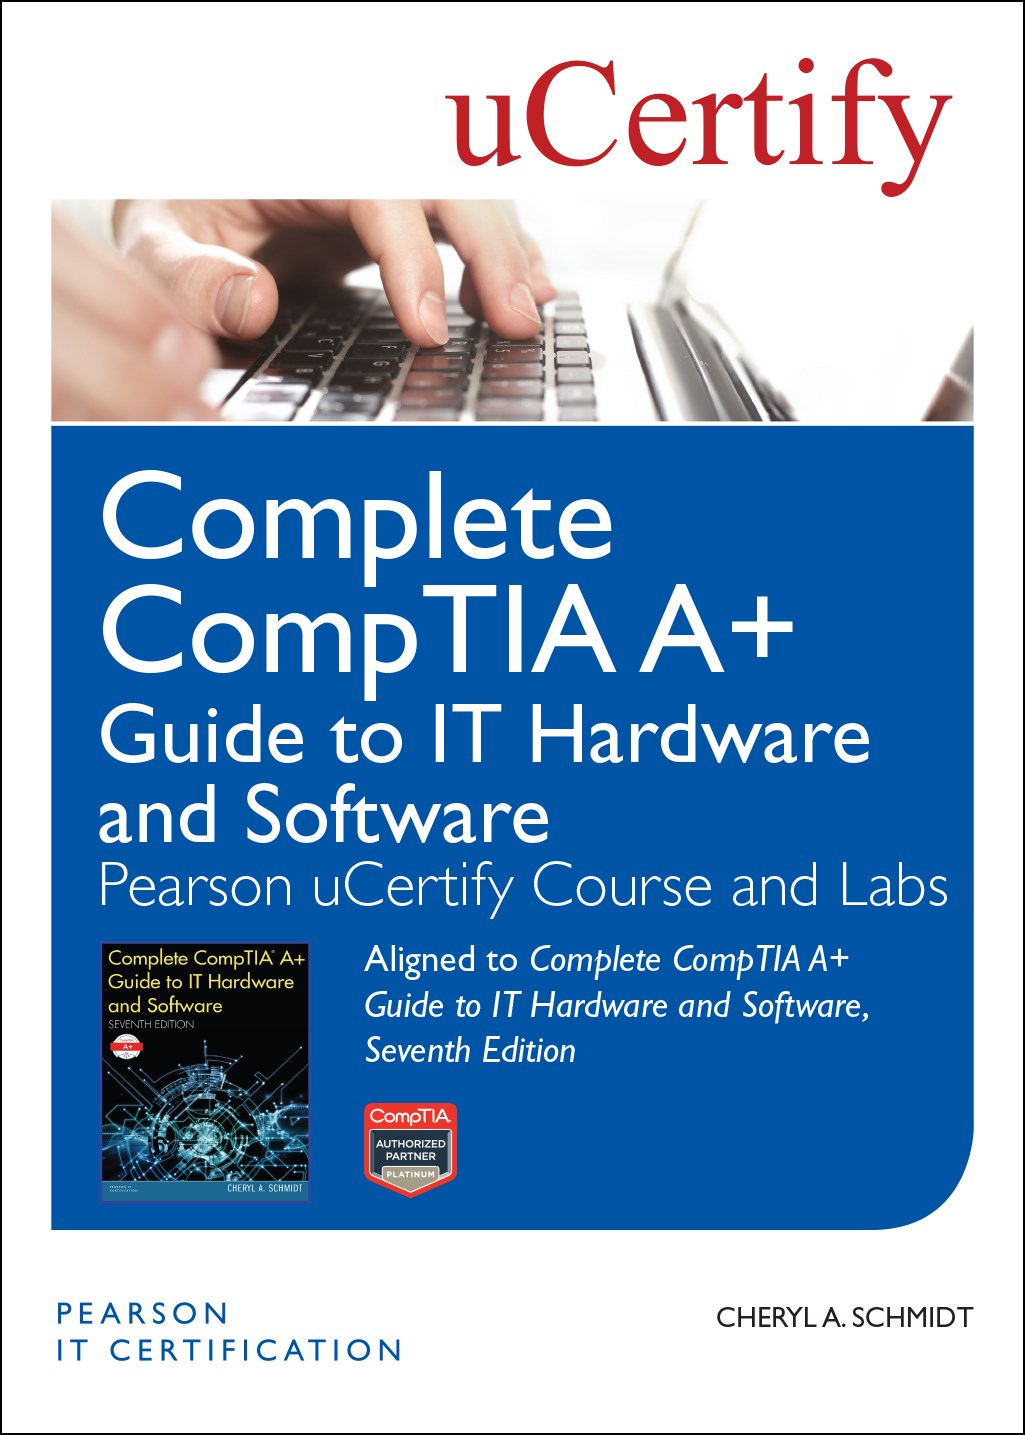 Complete CompTIA A+ Guide to IT Hardware and Software, Seventh Edition Pearson uCertify Course and Labs